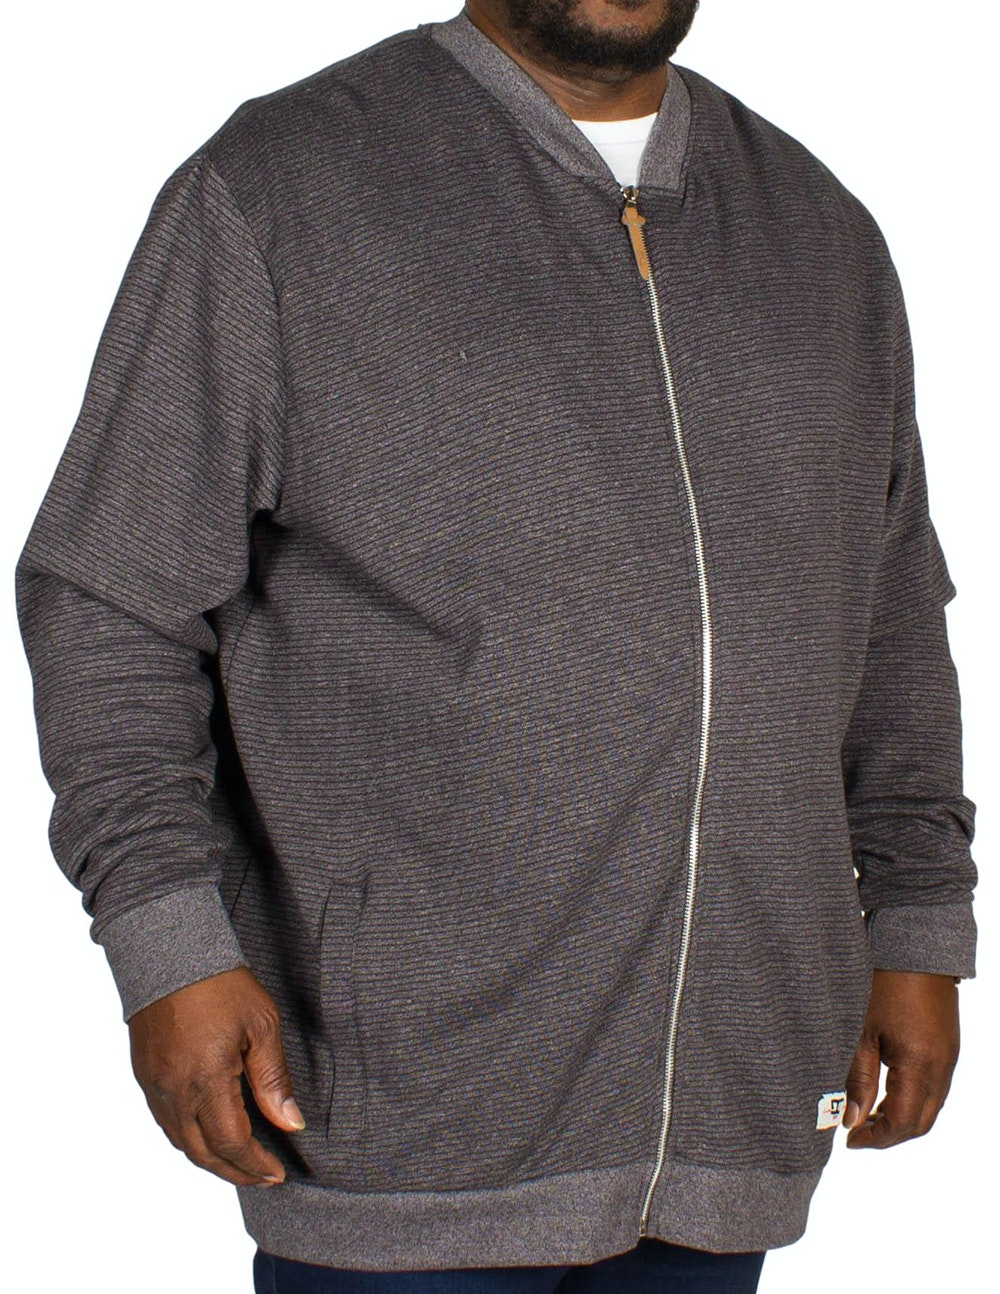 D555 Arnie Sweat Jacket Charcoal